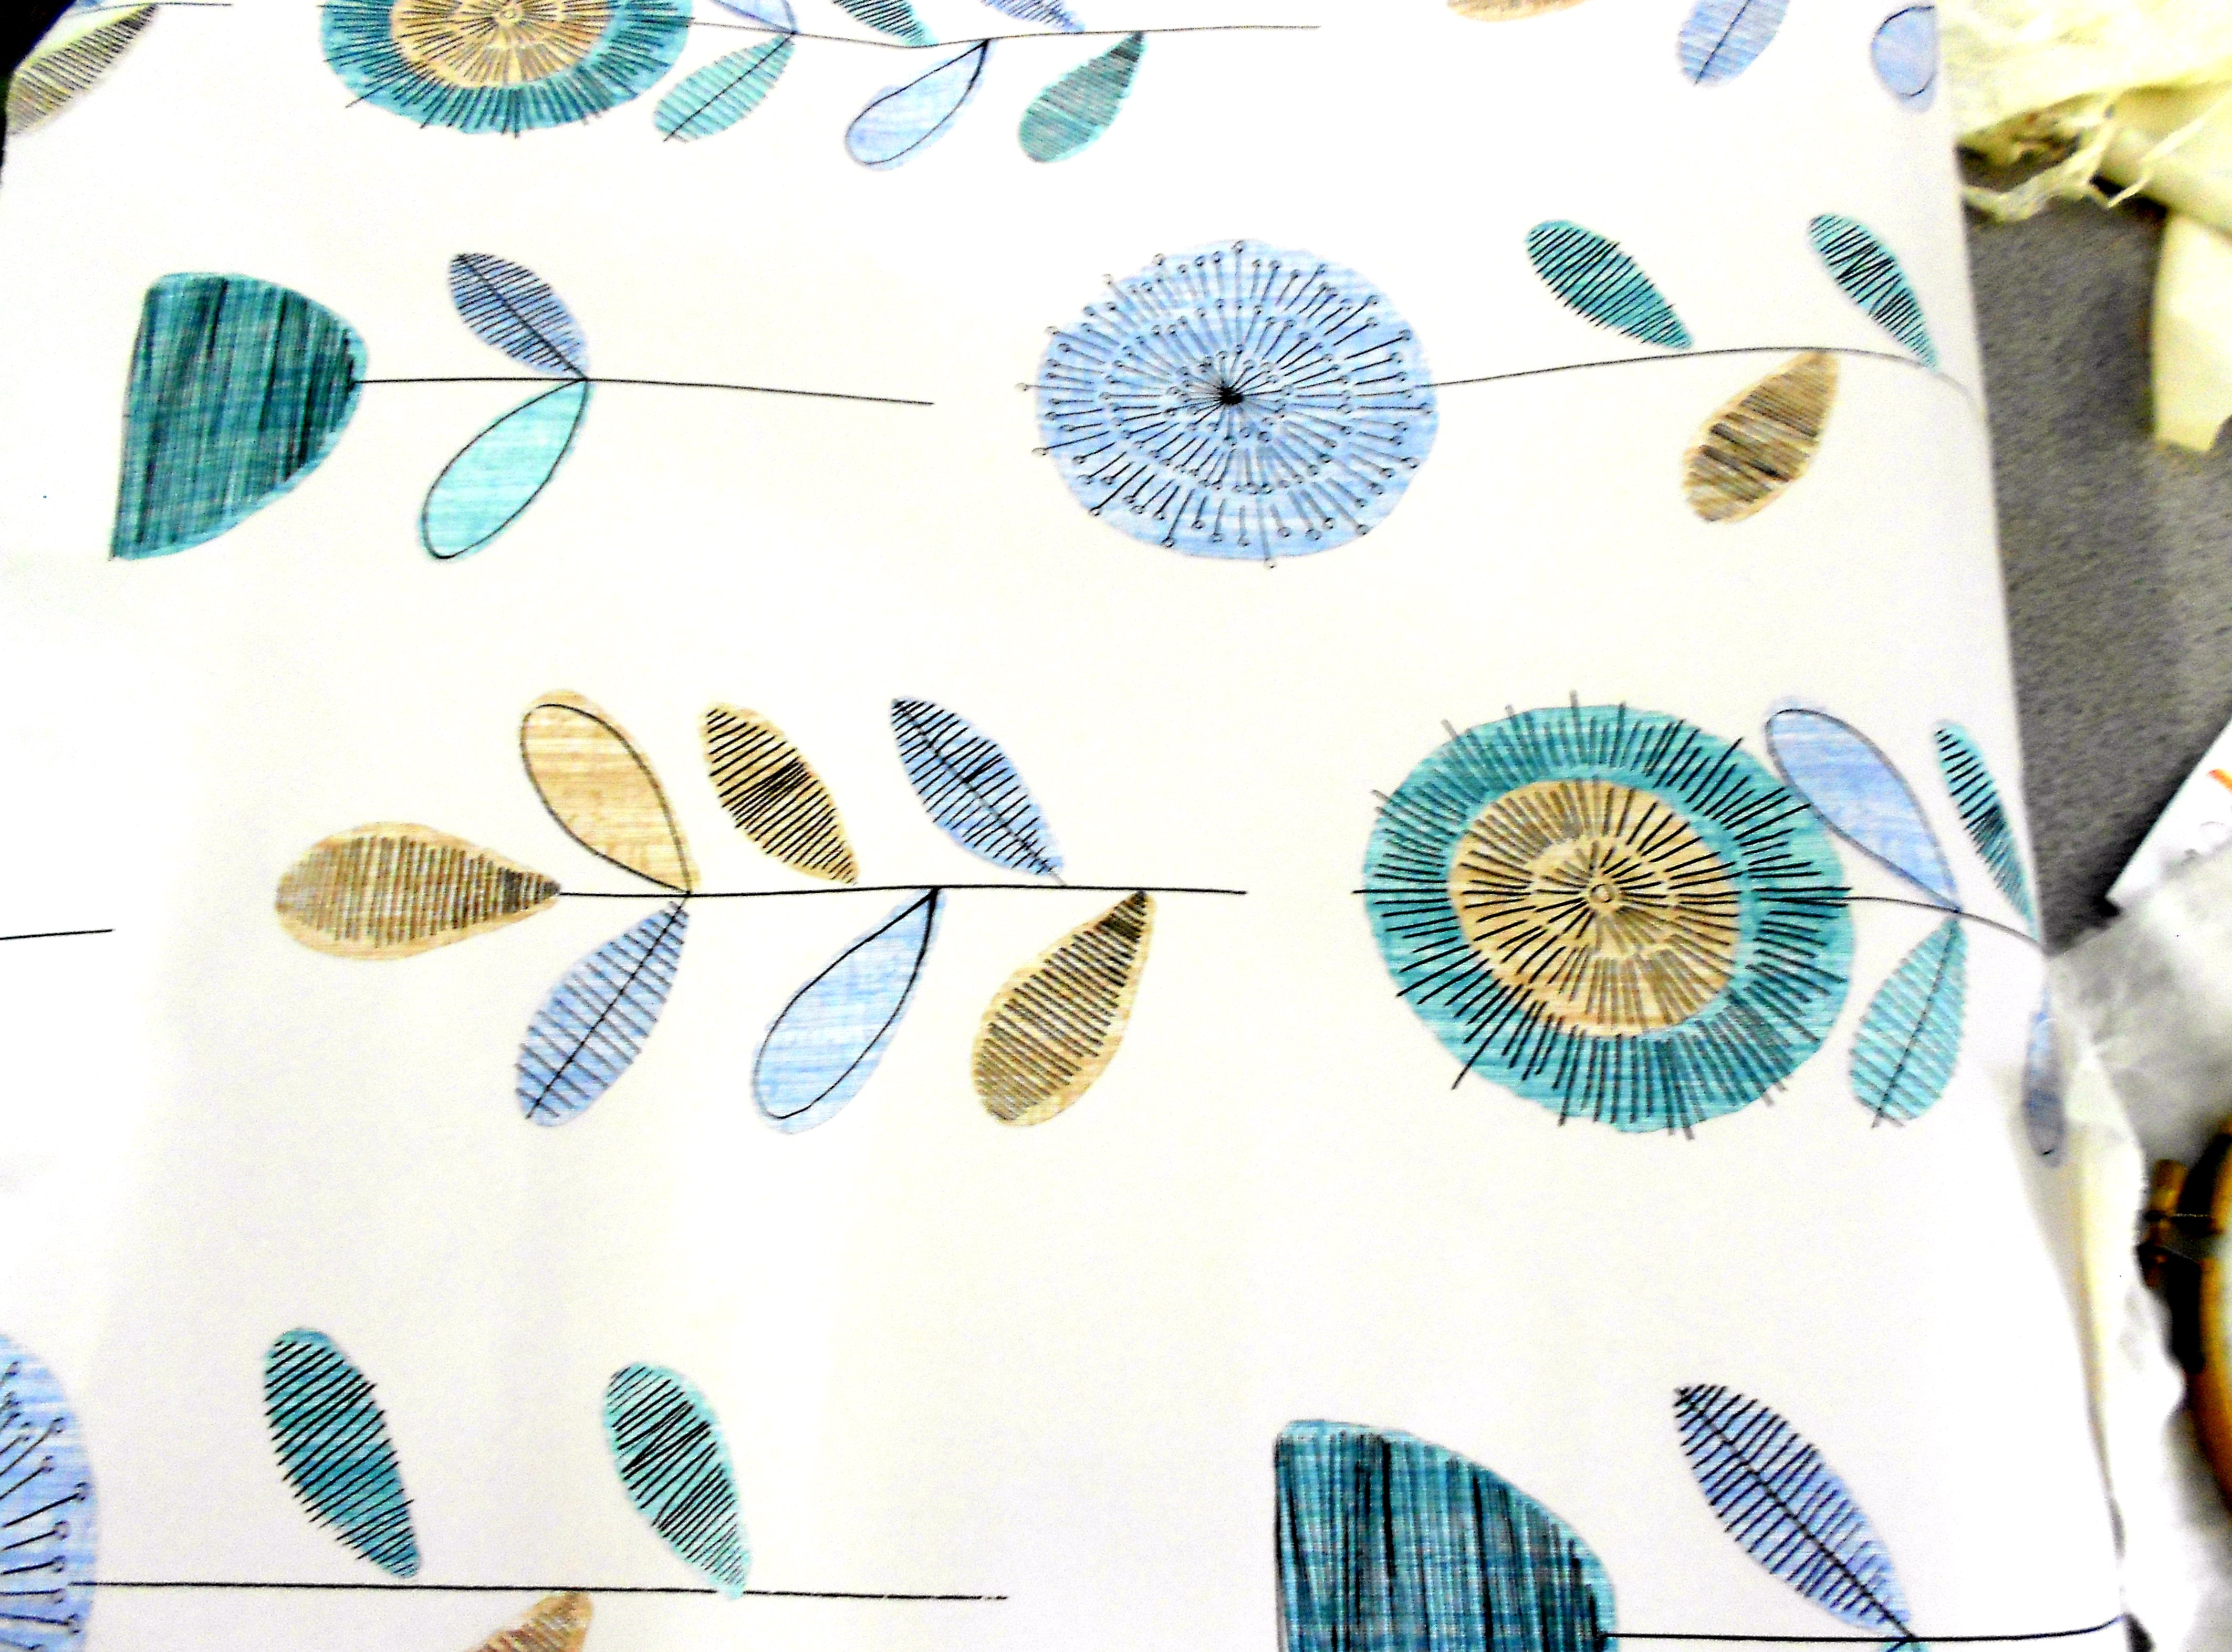 fabric sample by Angie Lewin